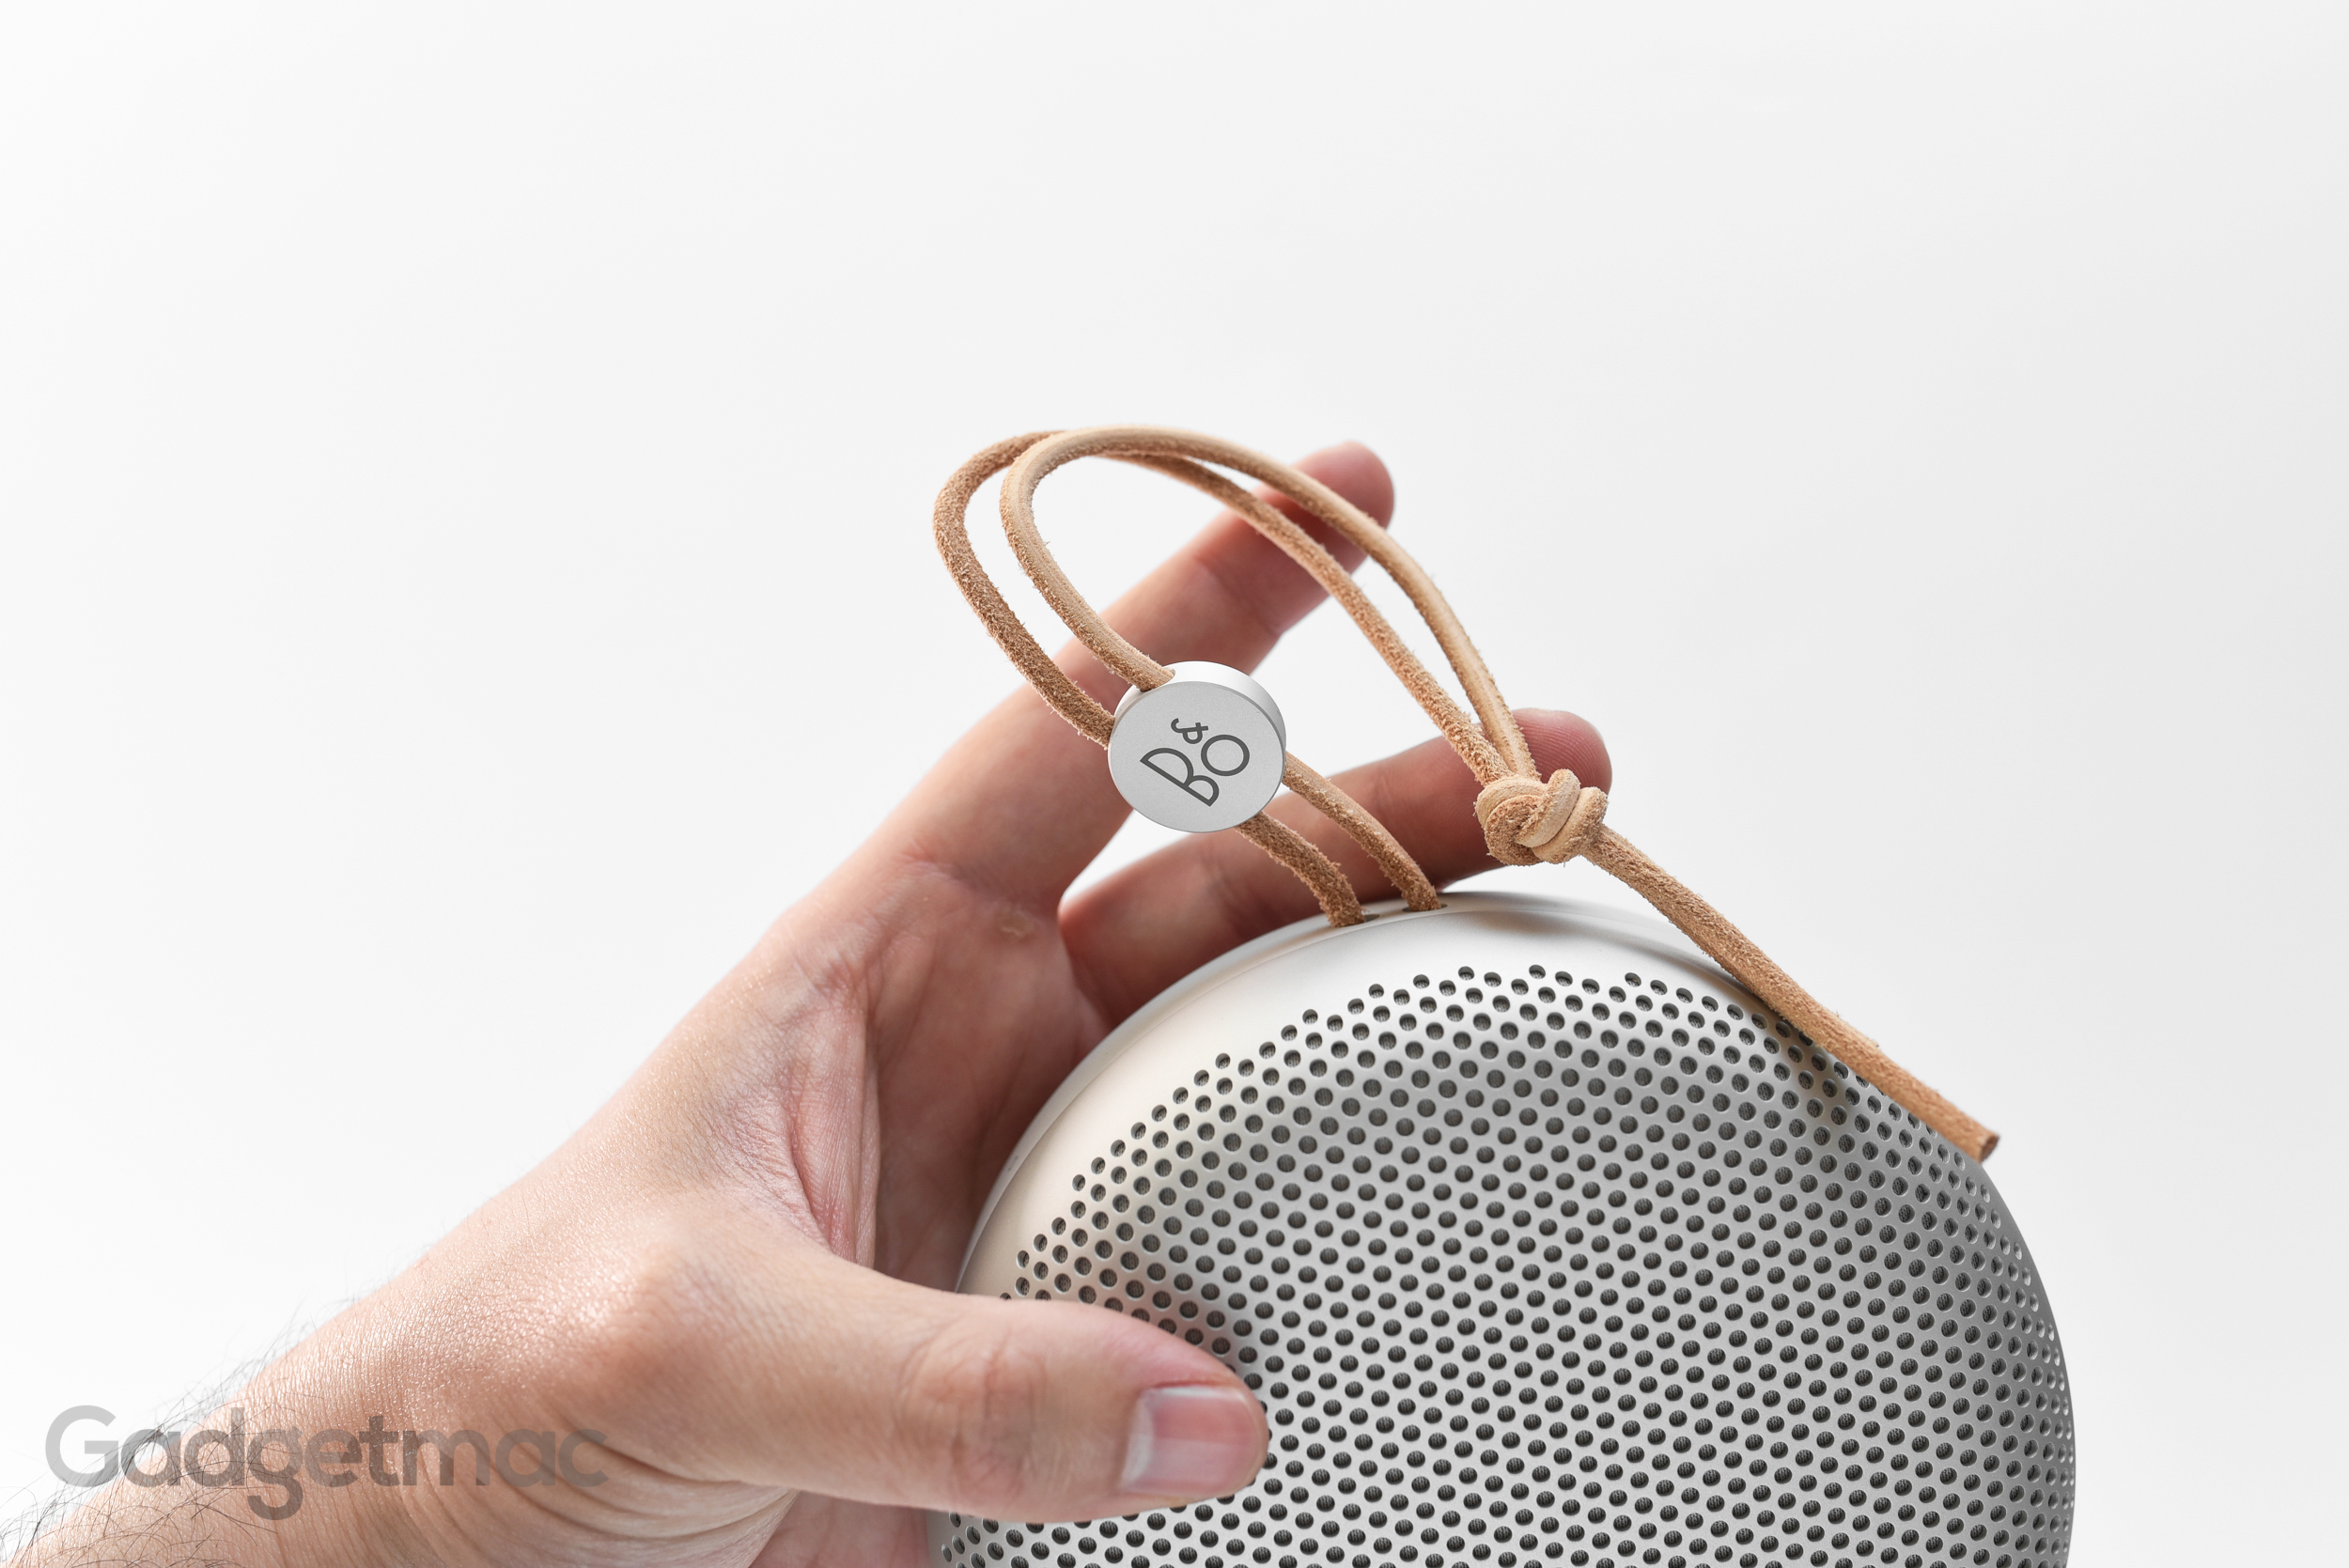 beoplay-a1-leather-strap.jpg